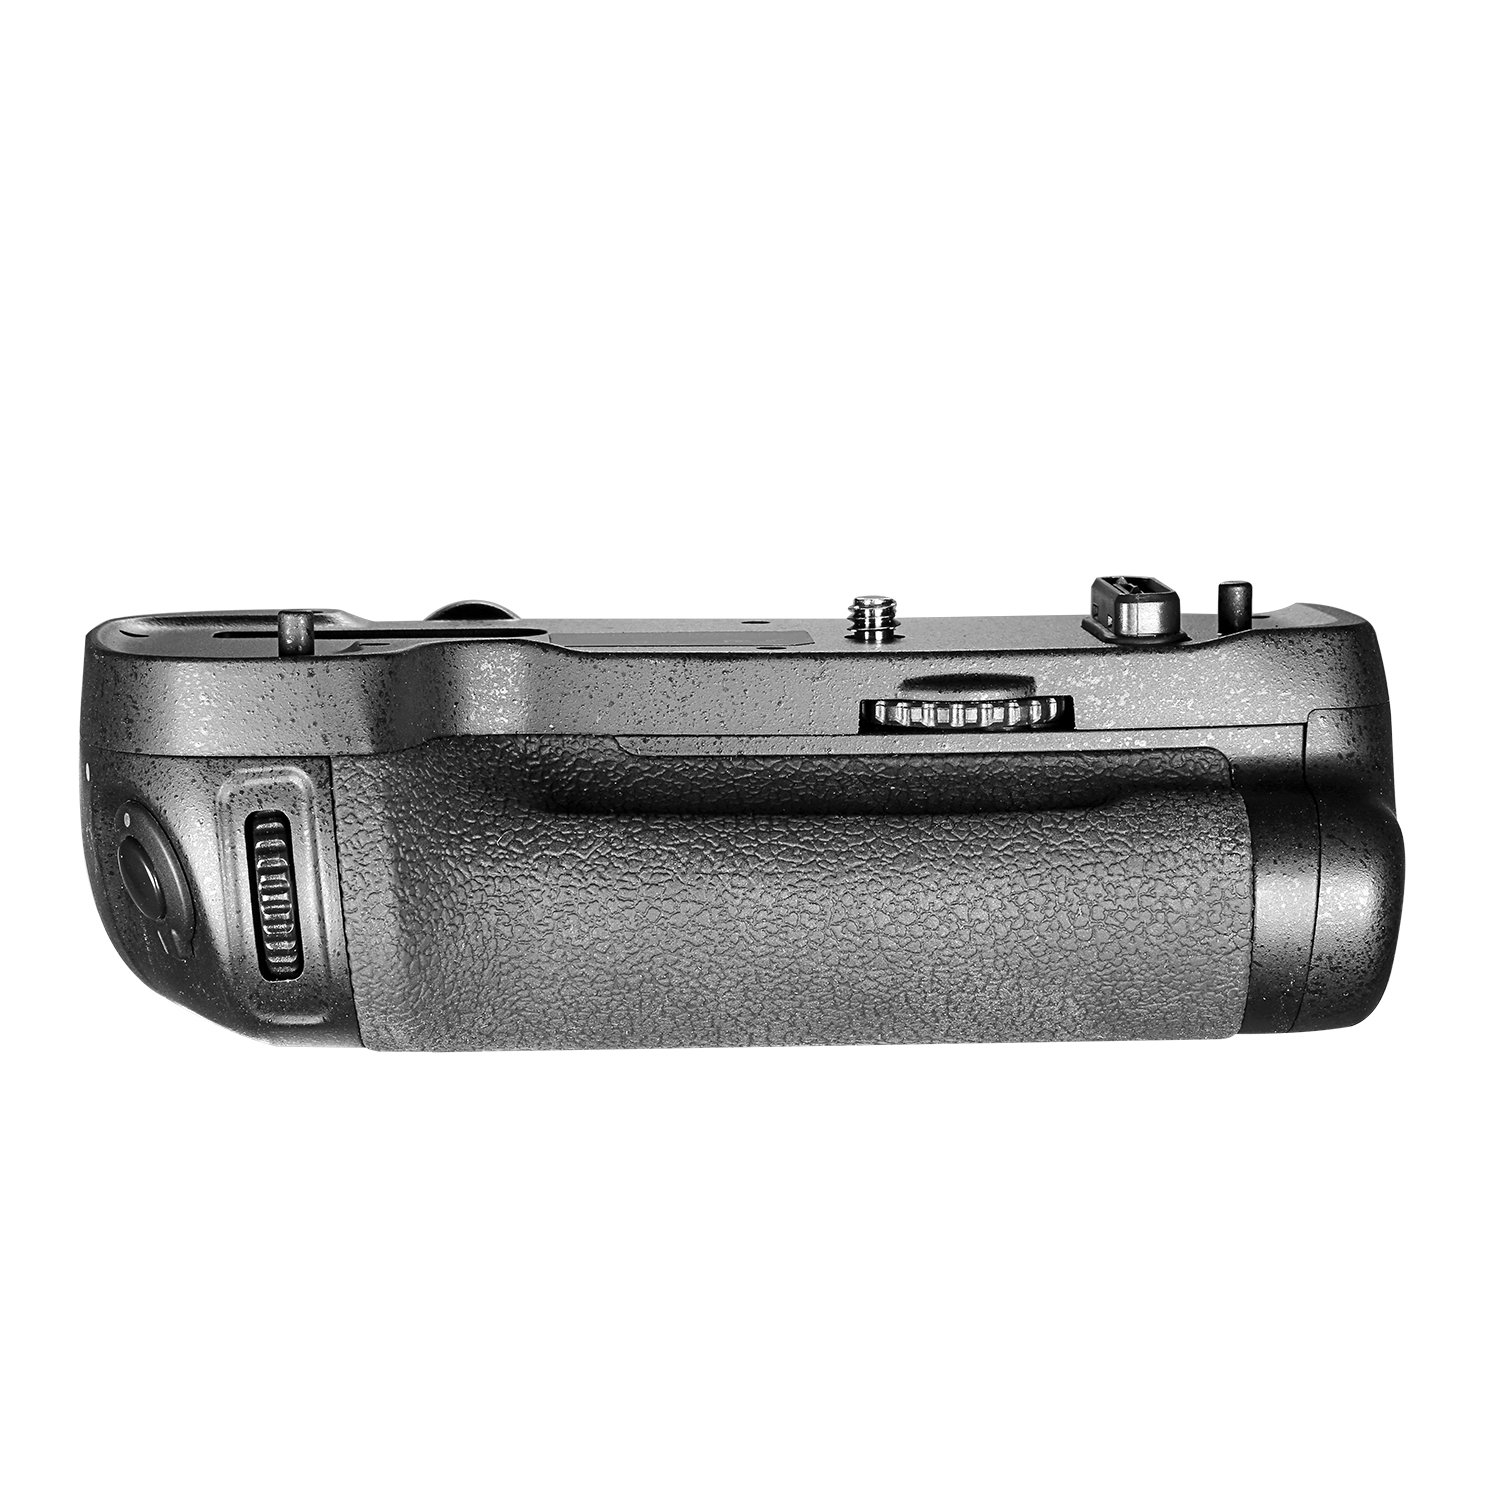 Neewer Battery Grip (MB-D17 Replacement) Work with 1 Piece EN-EL15 Battery or 8 Pieces A A Batteries for Nikon D500 Camera